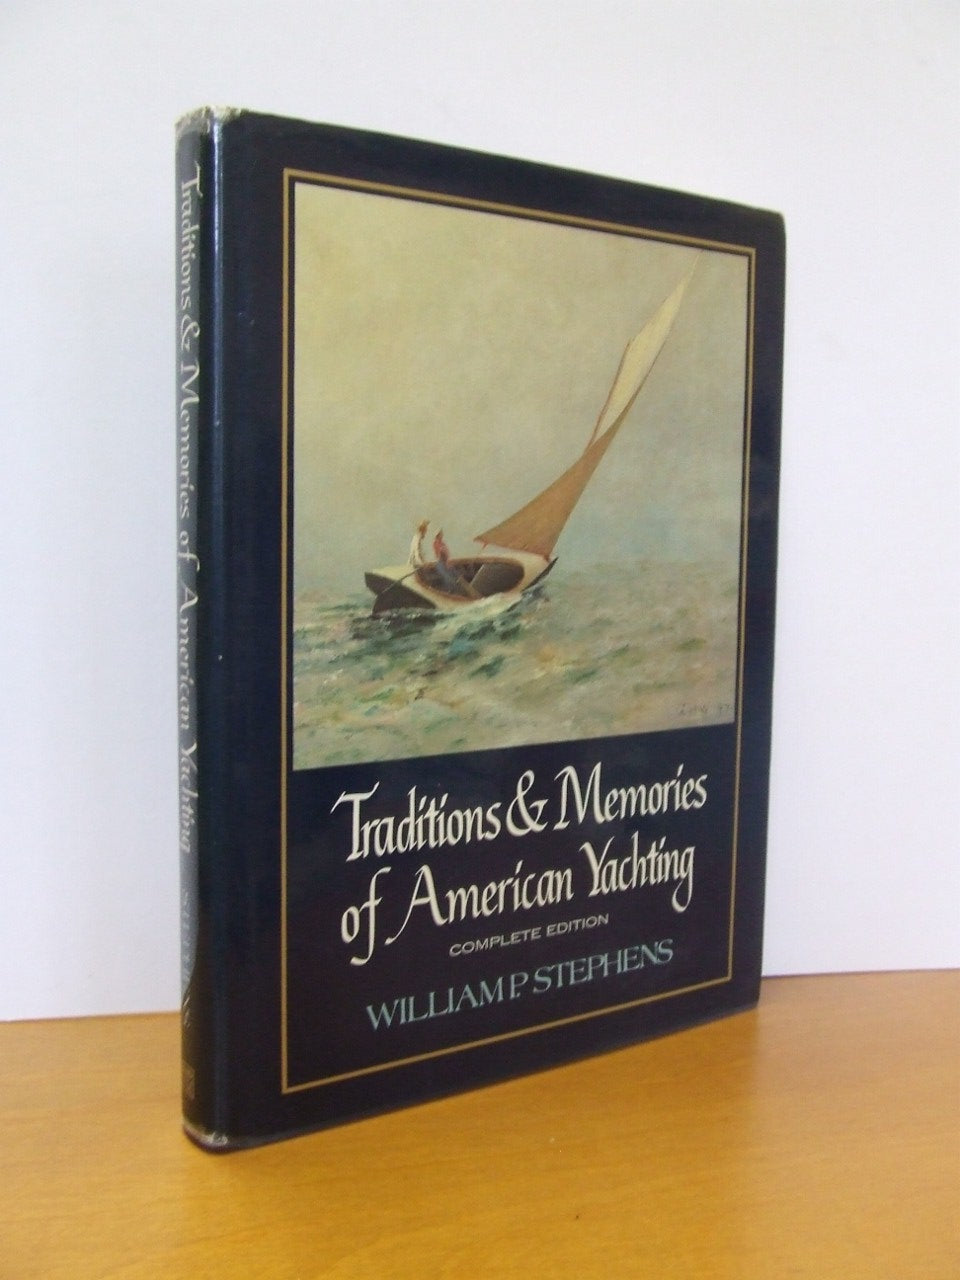 Traditions Memories of American Yachting  [complete edition]